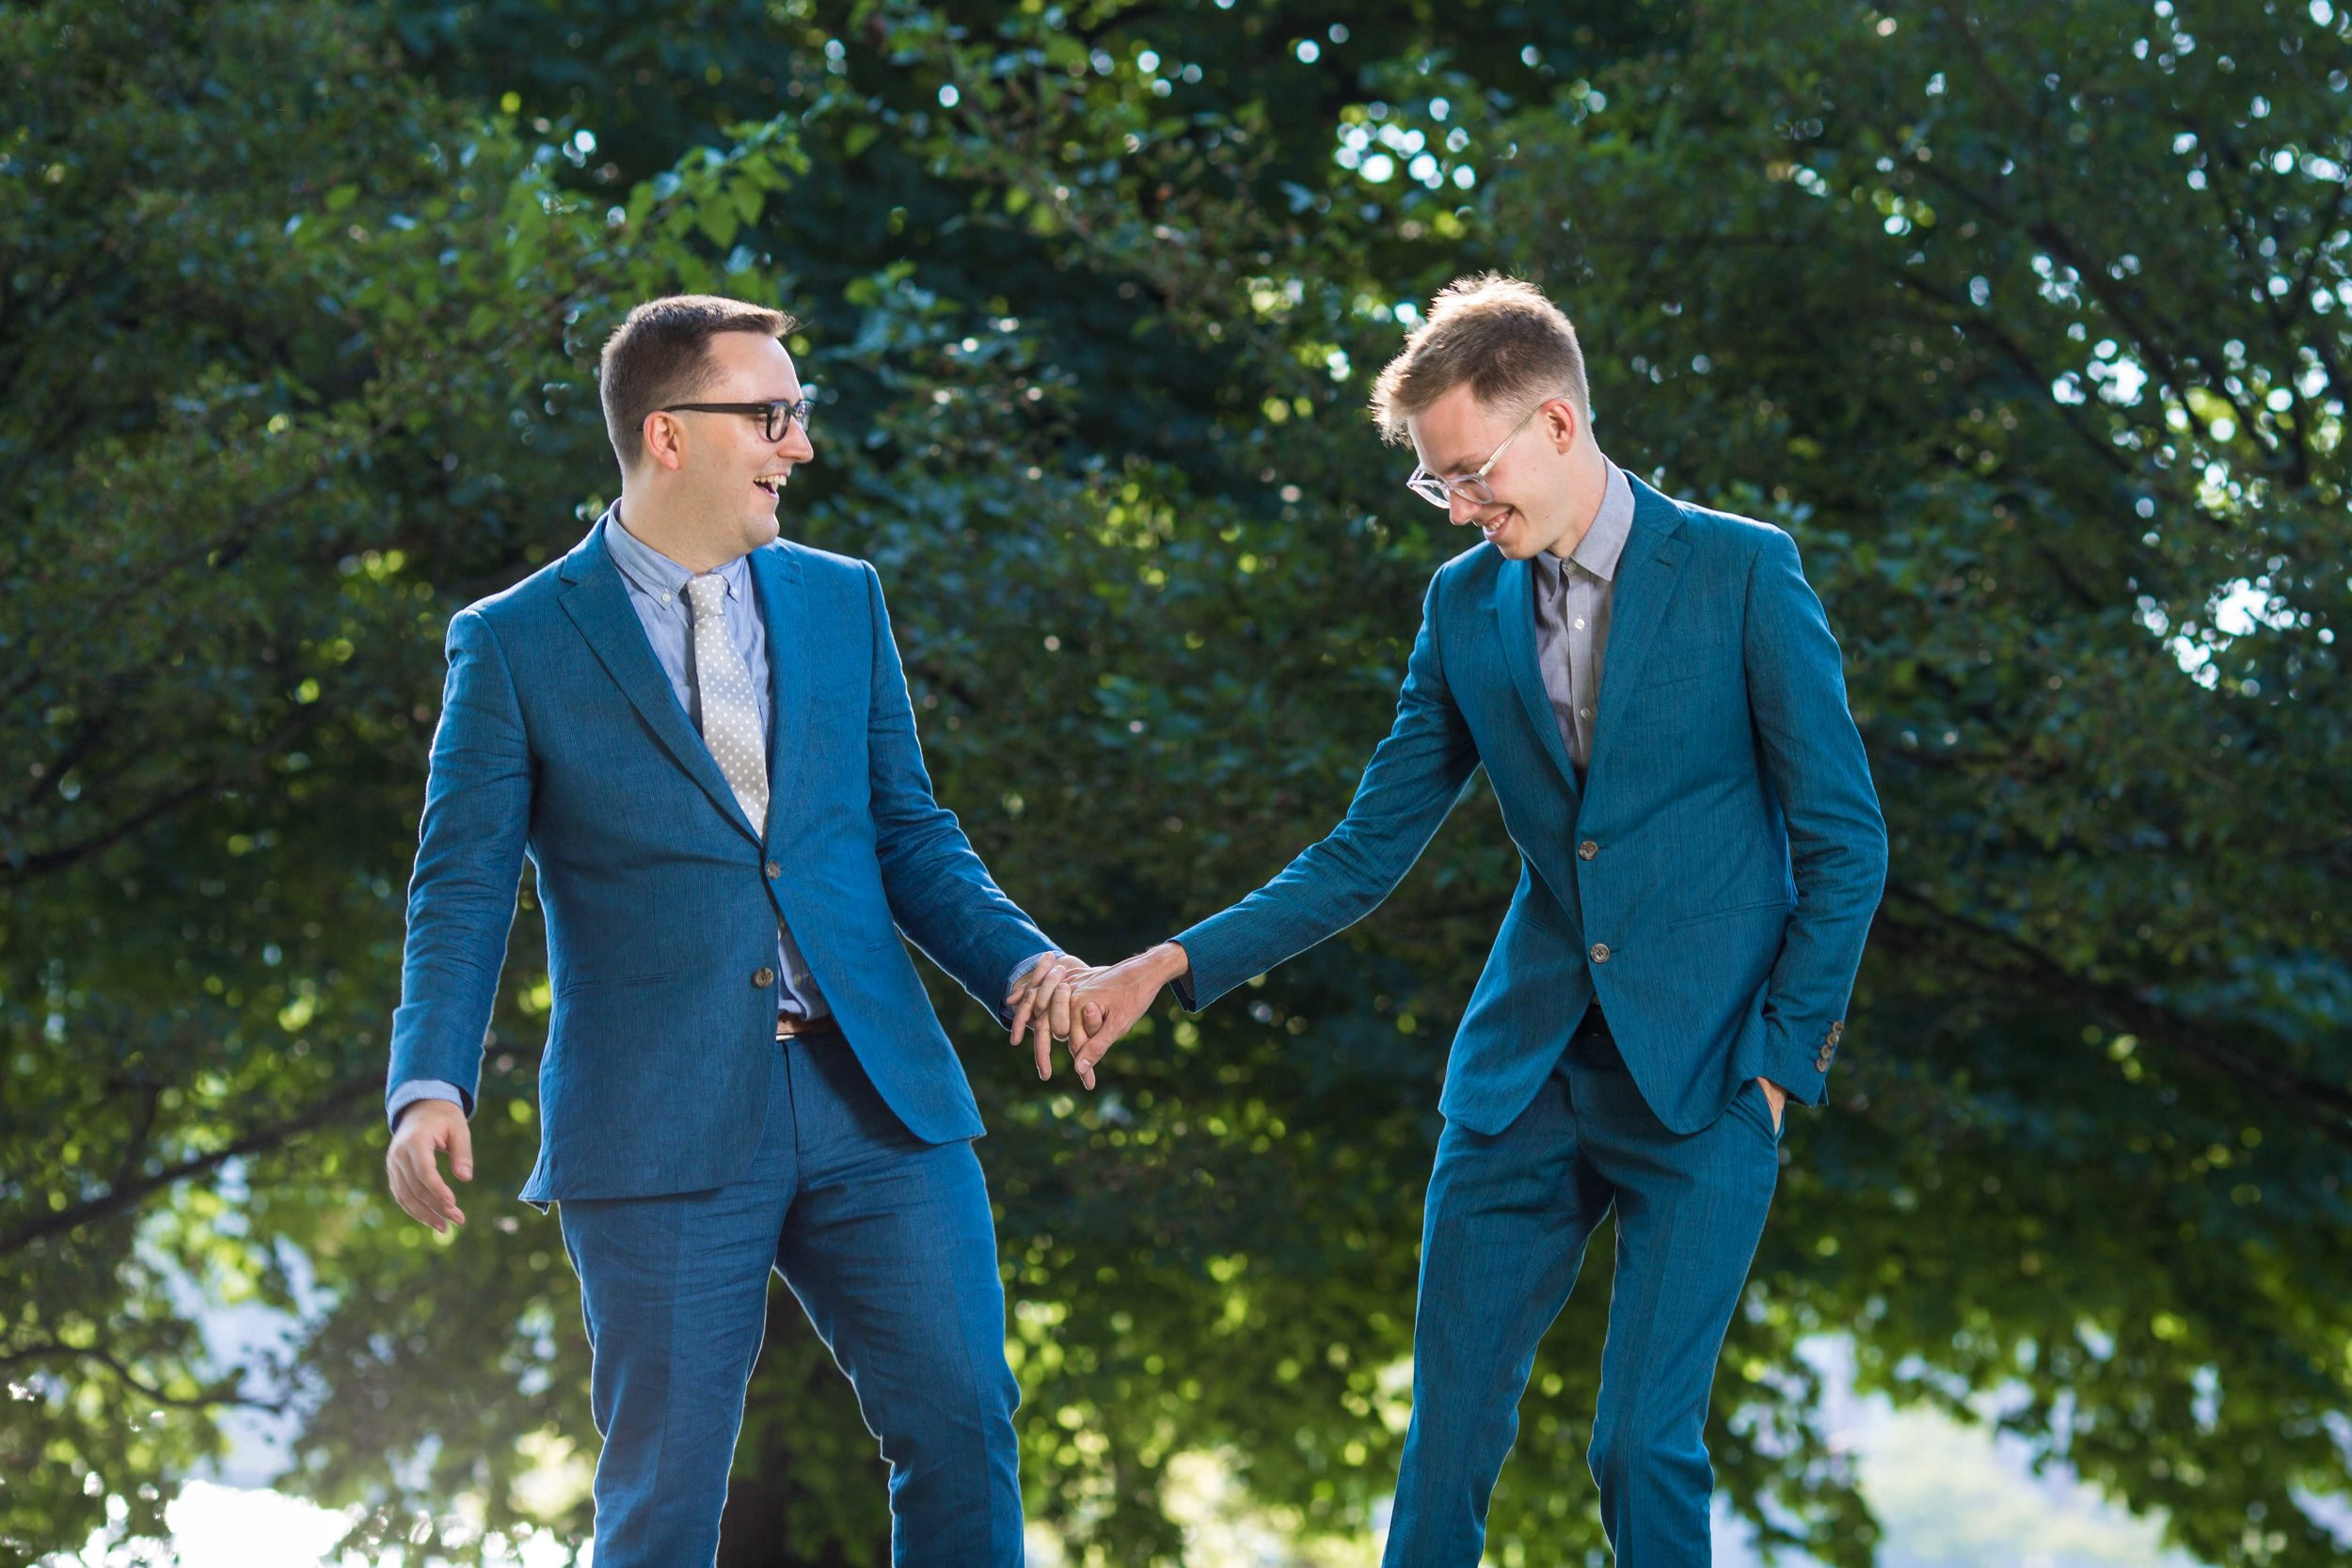 NYC Wedding Randalls Island New York City Photographer Gay Same Sex Harlem_54.jpg